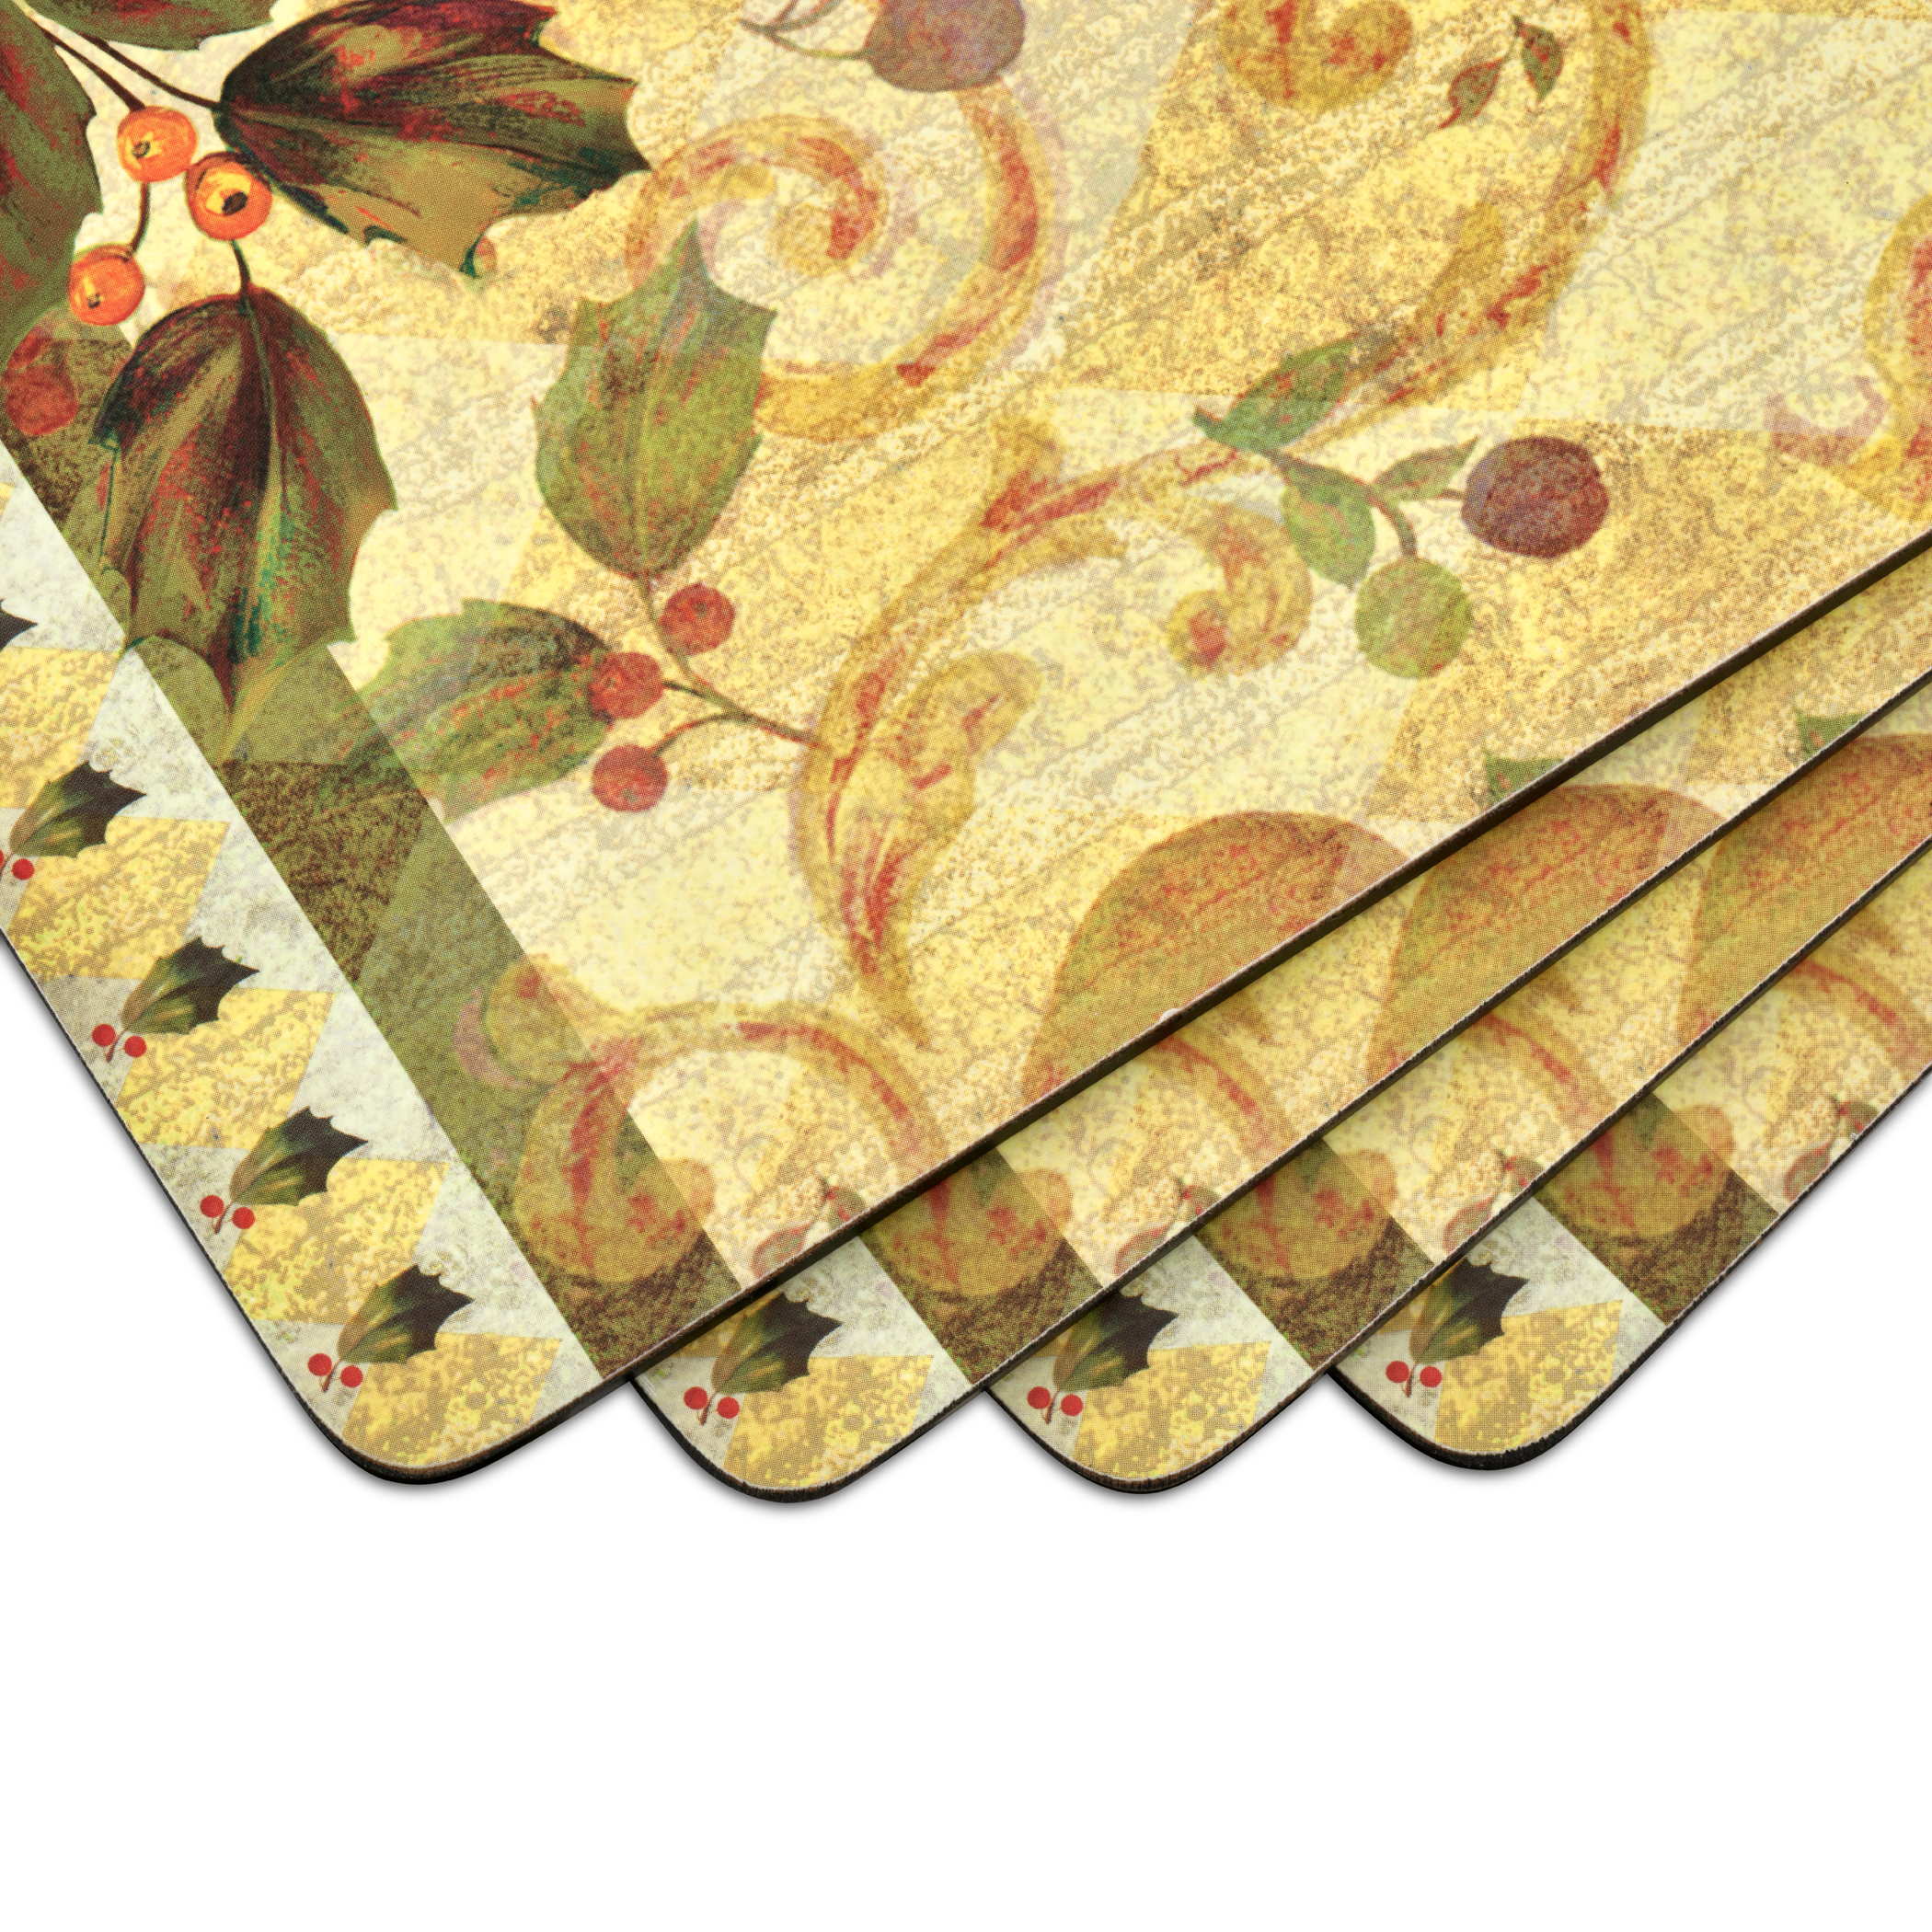 Pimpernel Golden Pineapple Placemats Set of 4 image number 2